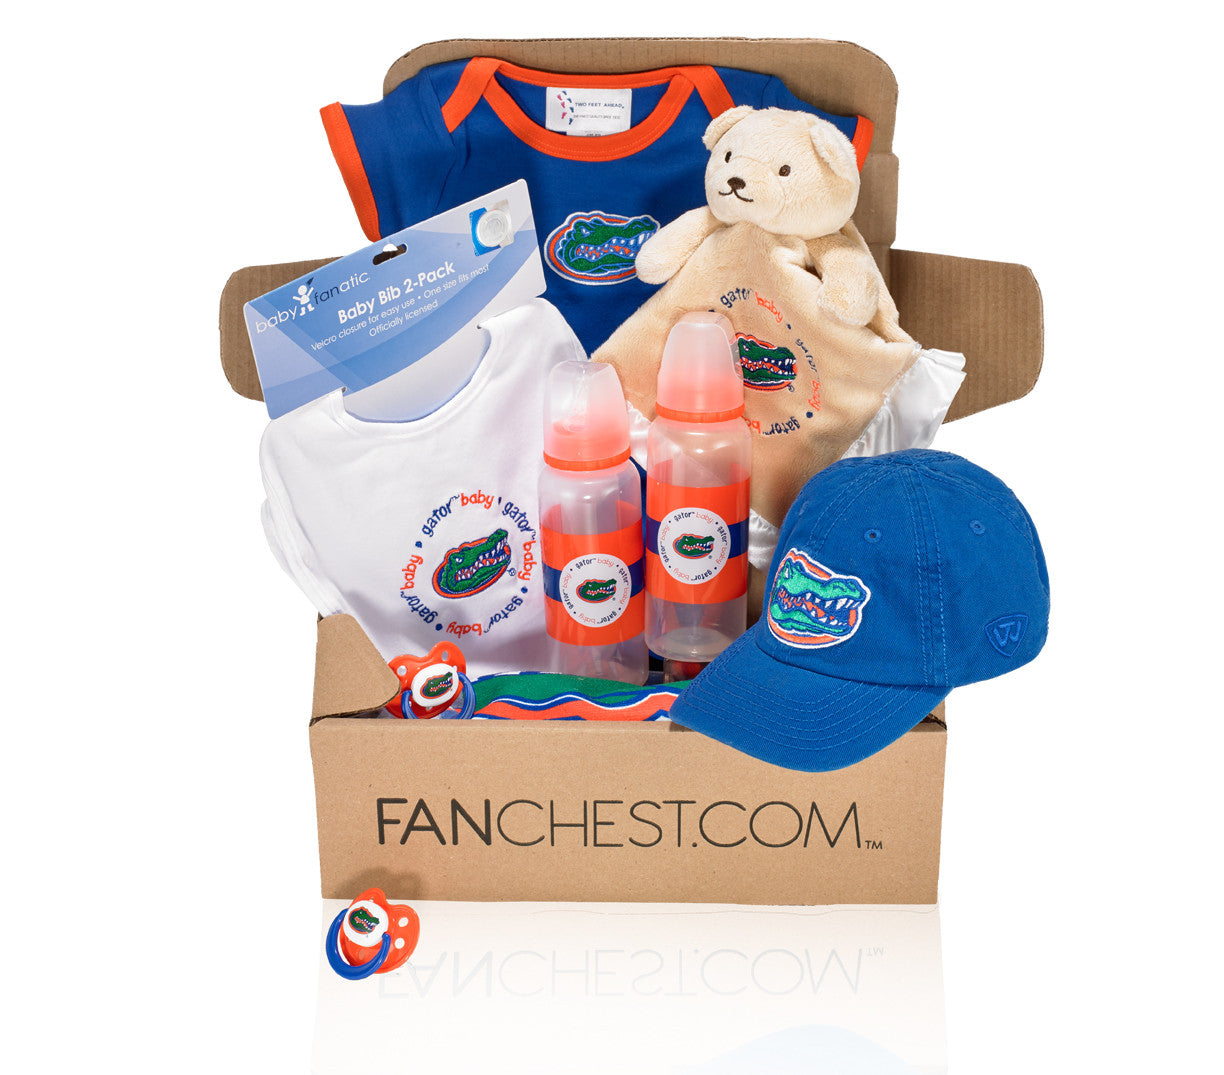 Florida Gators Baby Gift Box Baby Gators Gear Fanchest